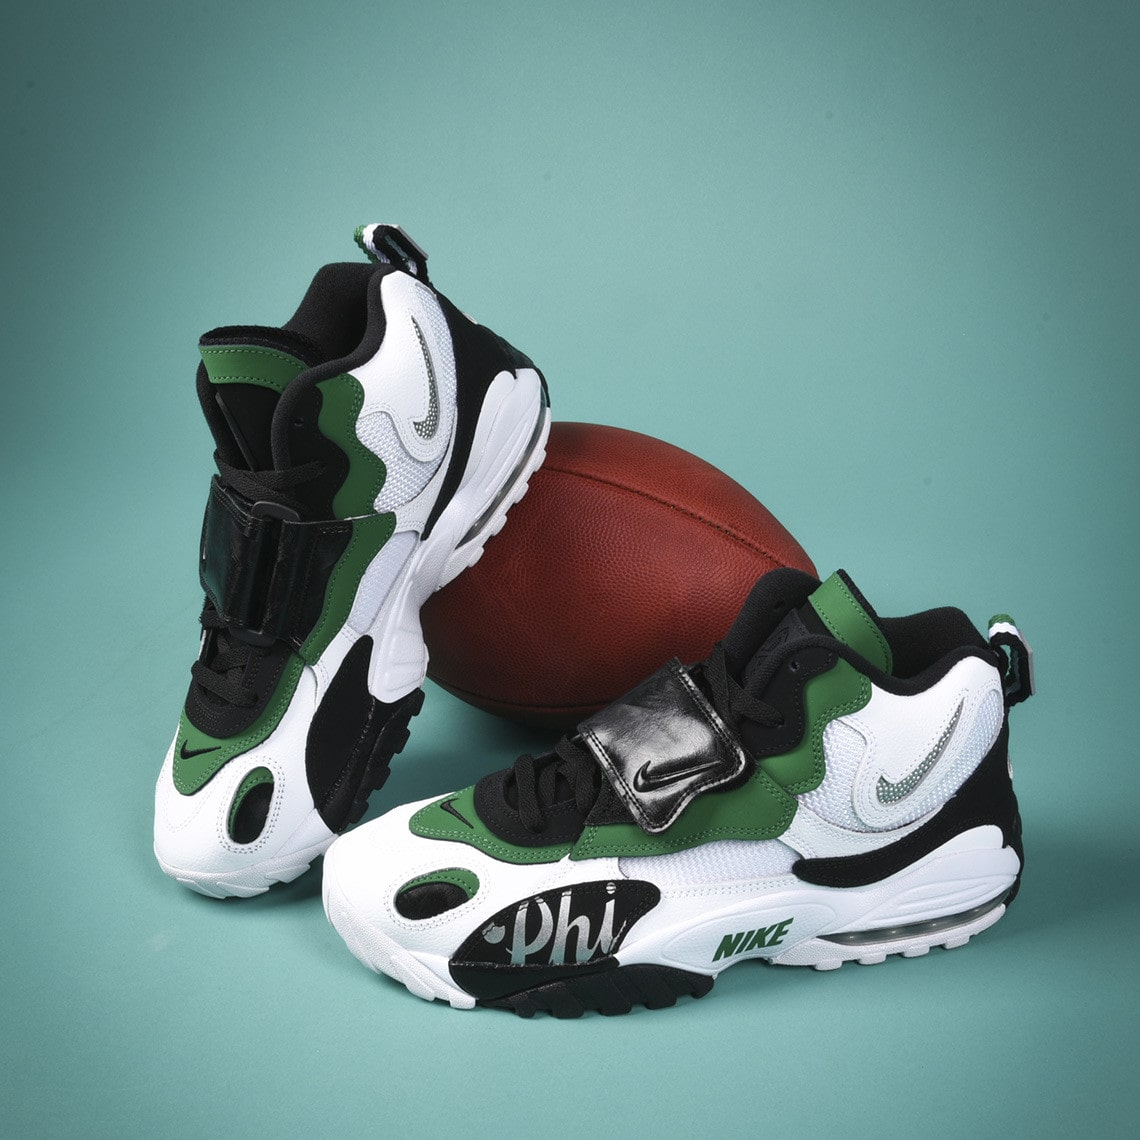 Foot Locker Honor Philly With Their